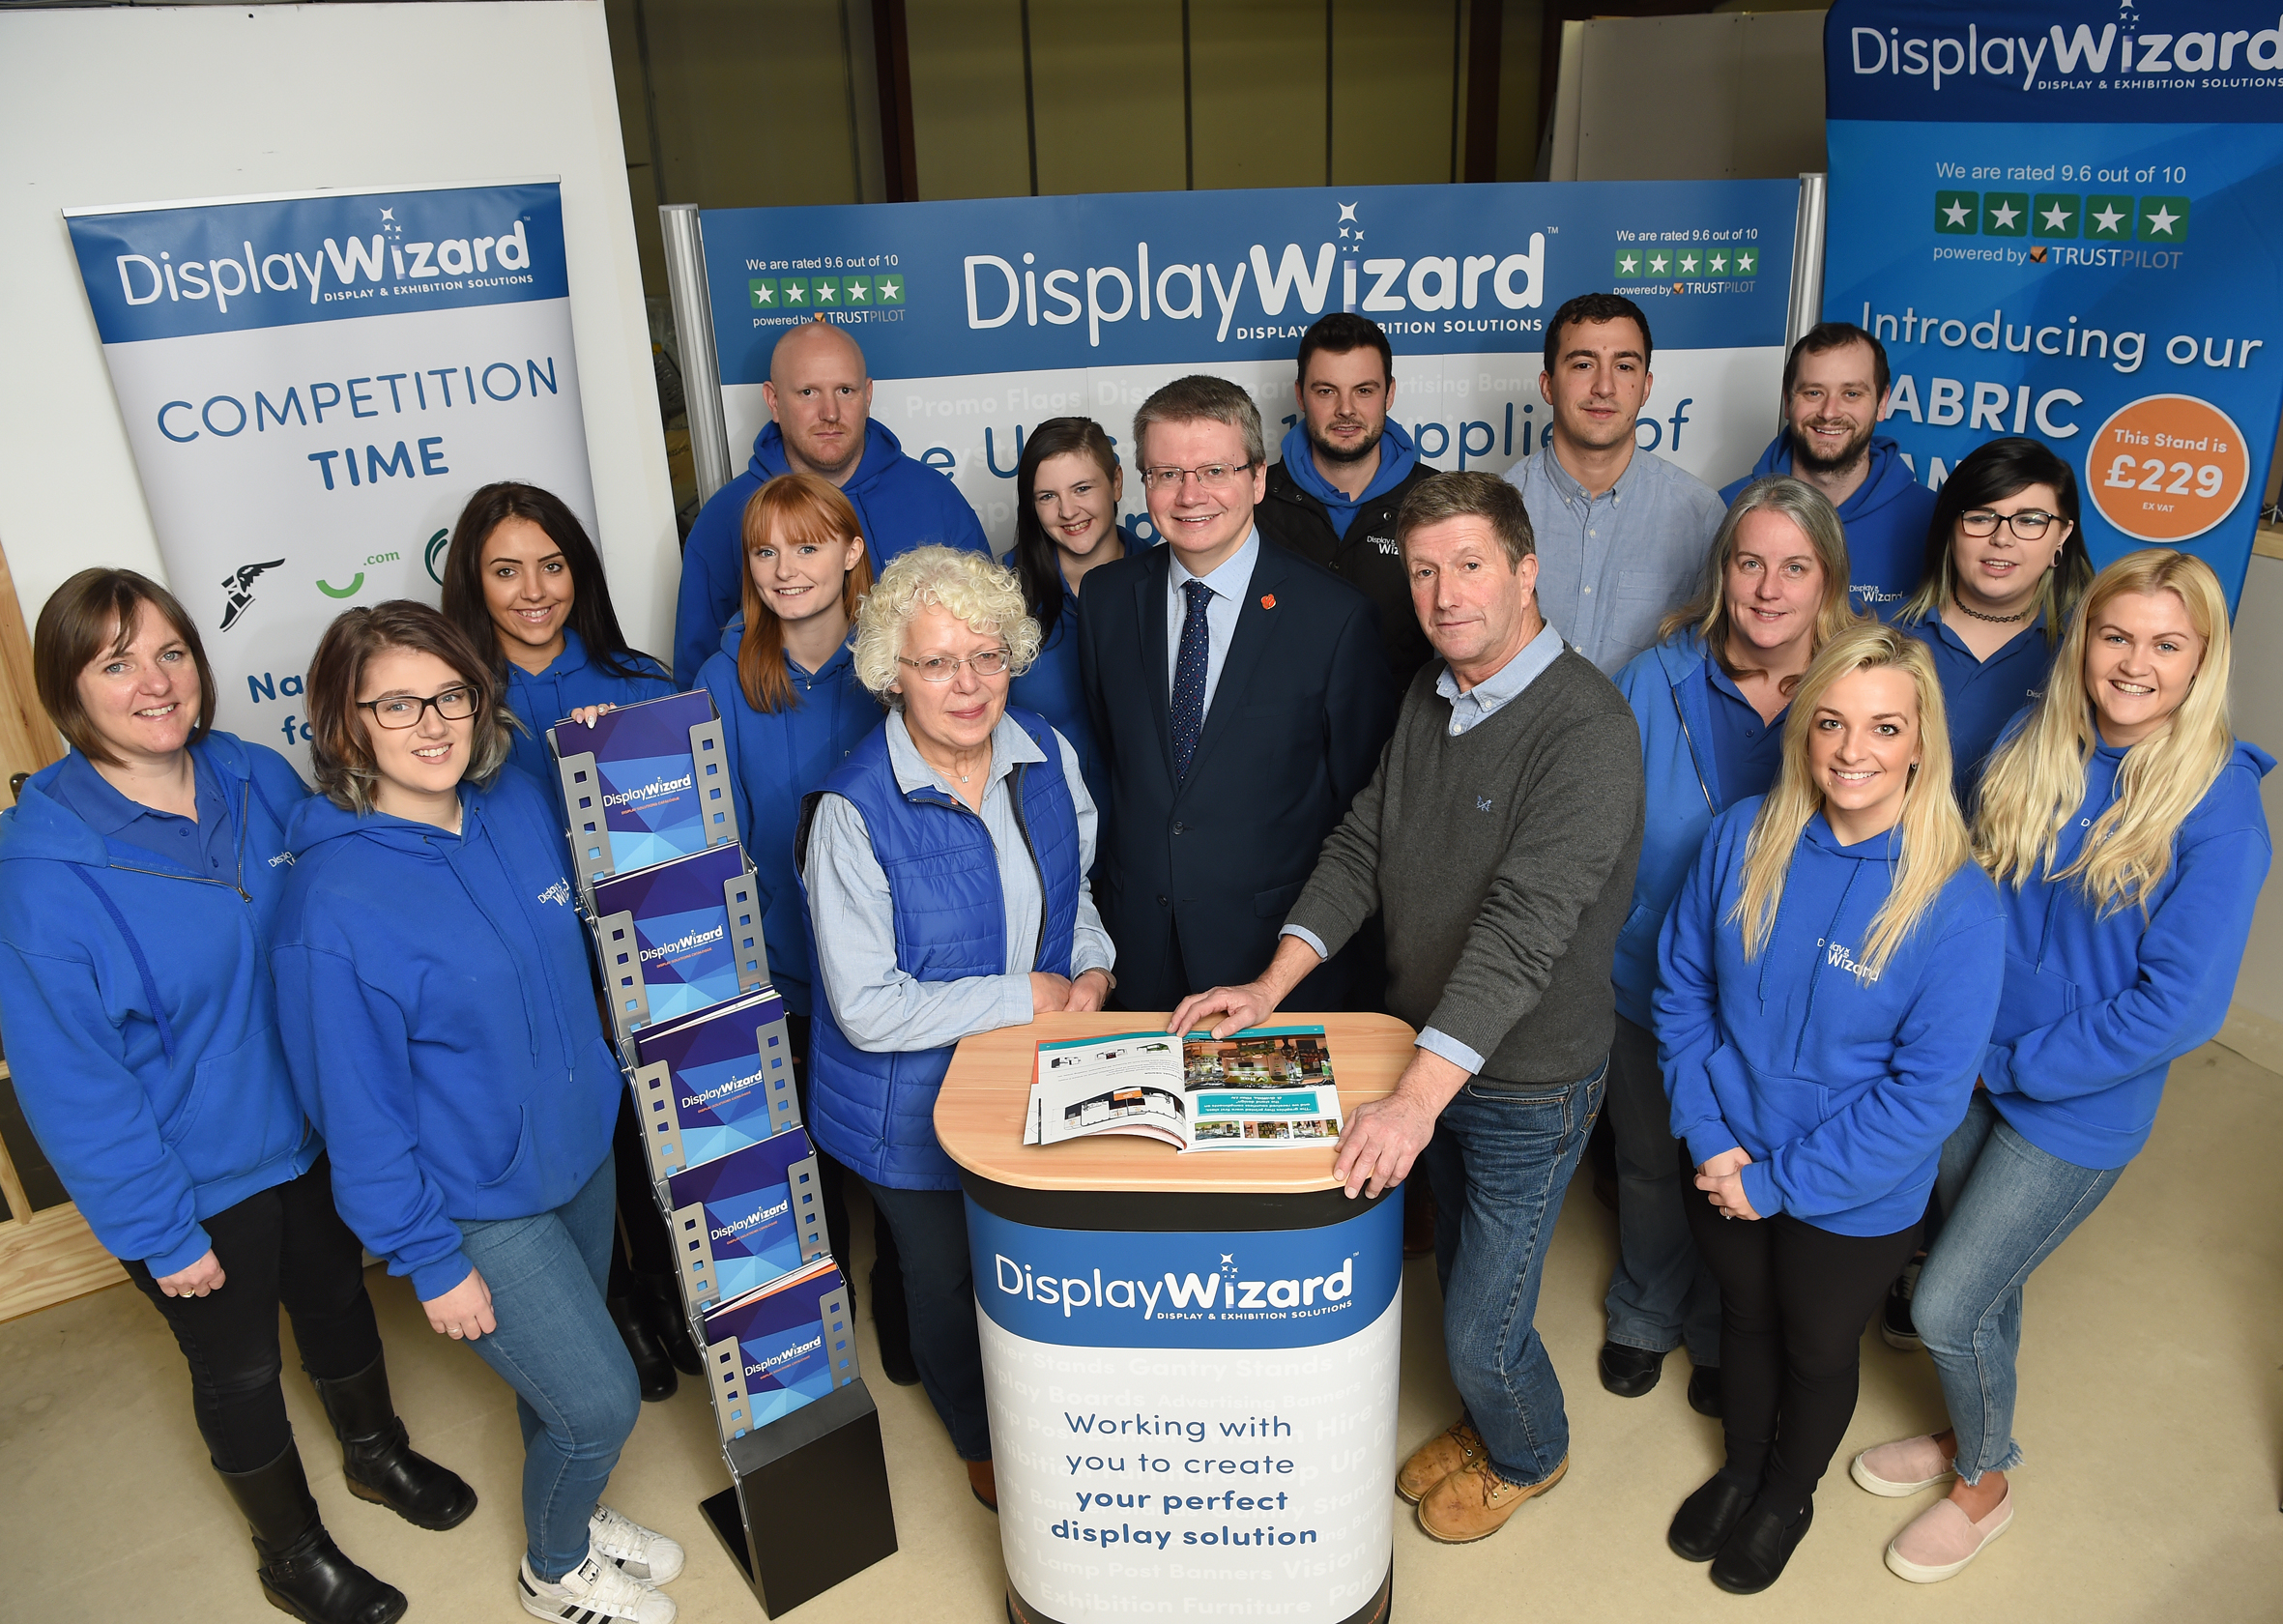 Display stand firm generates 400% growth thanks to Rosebud funding package